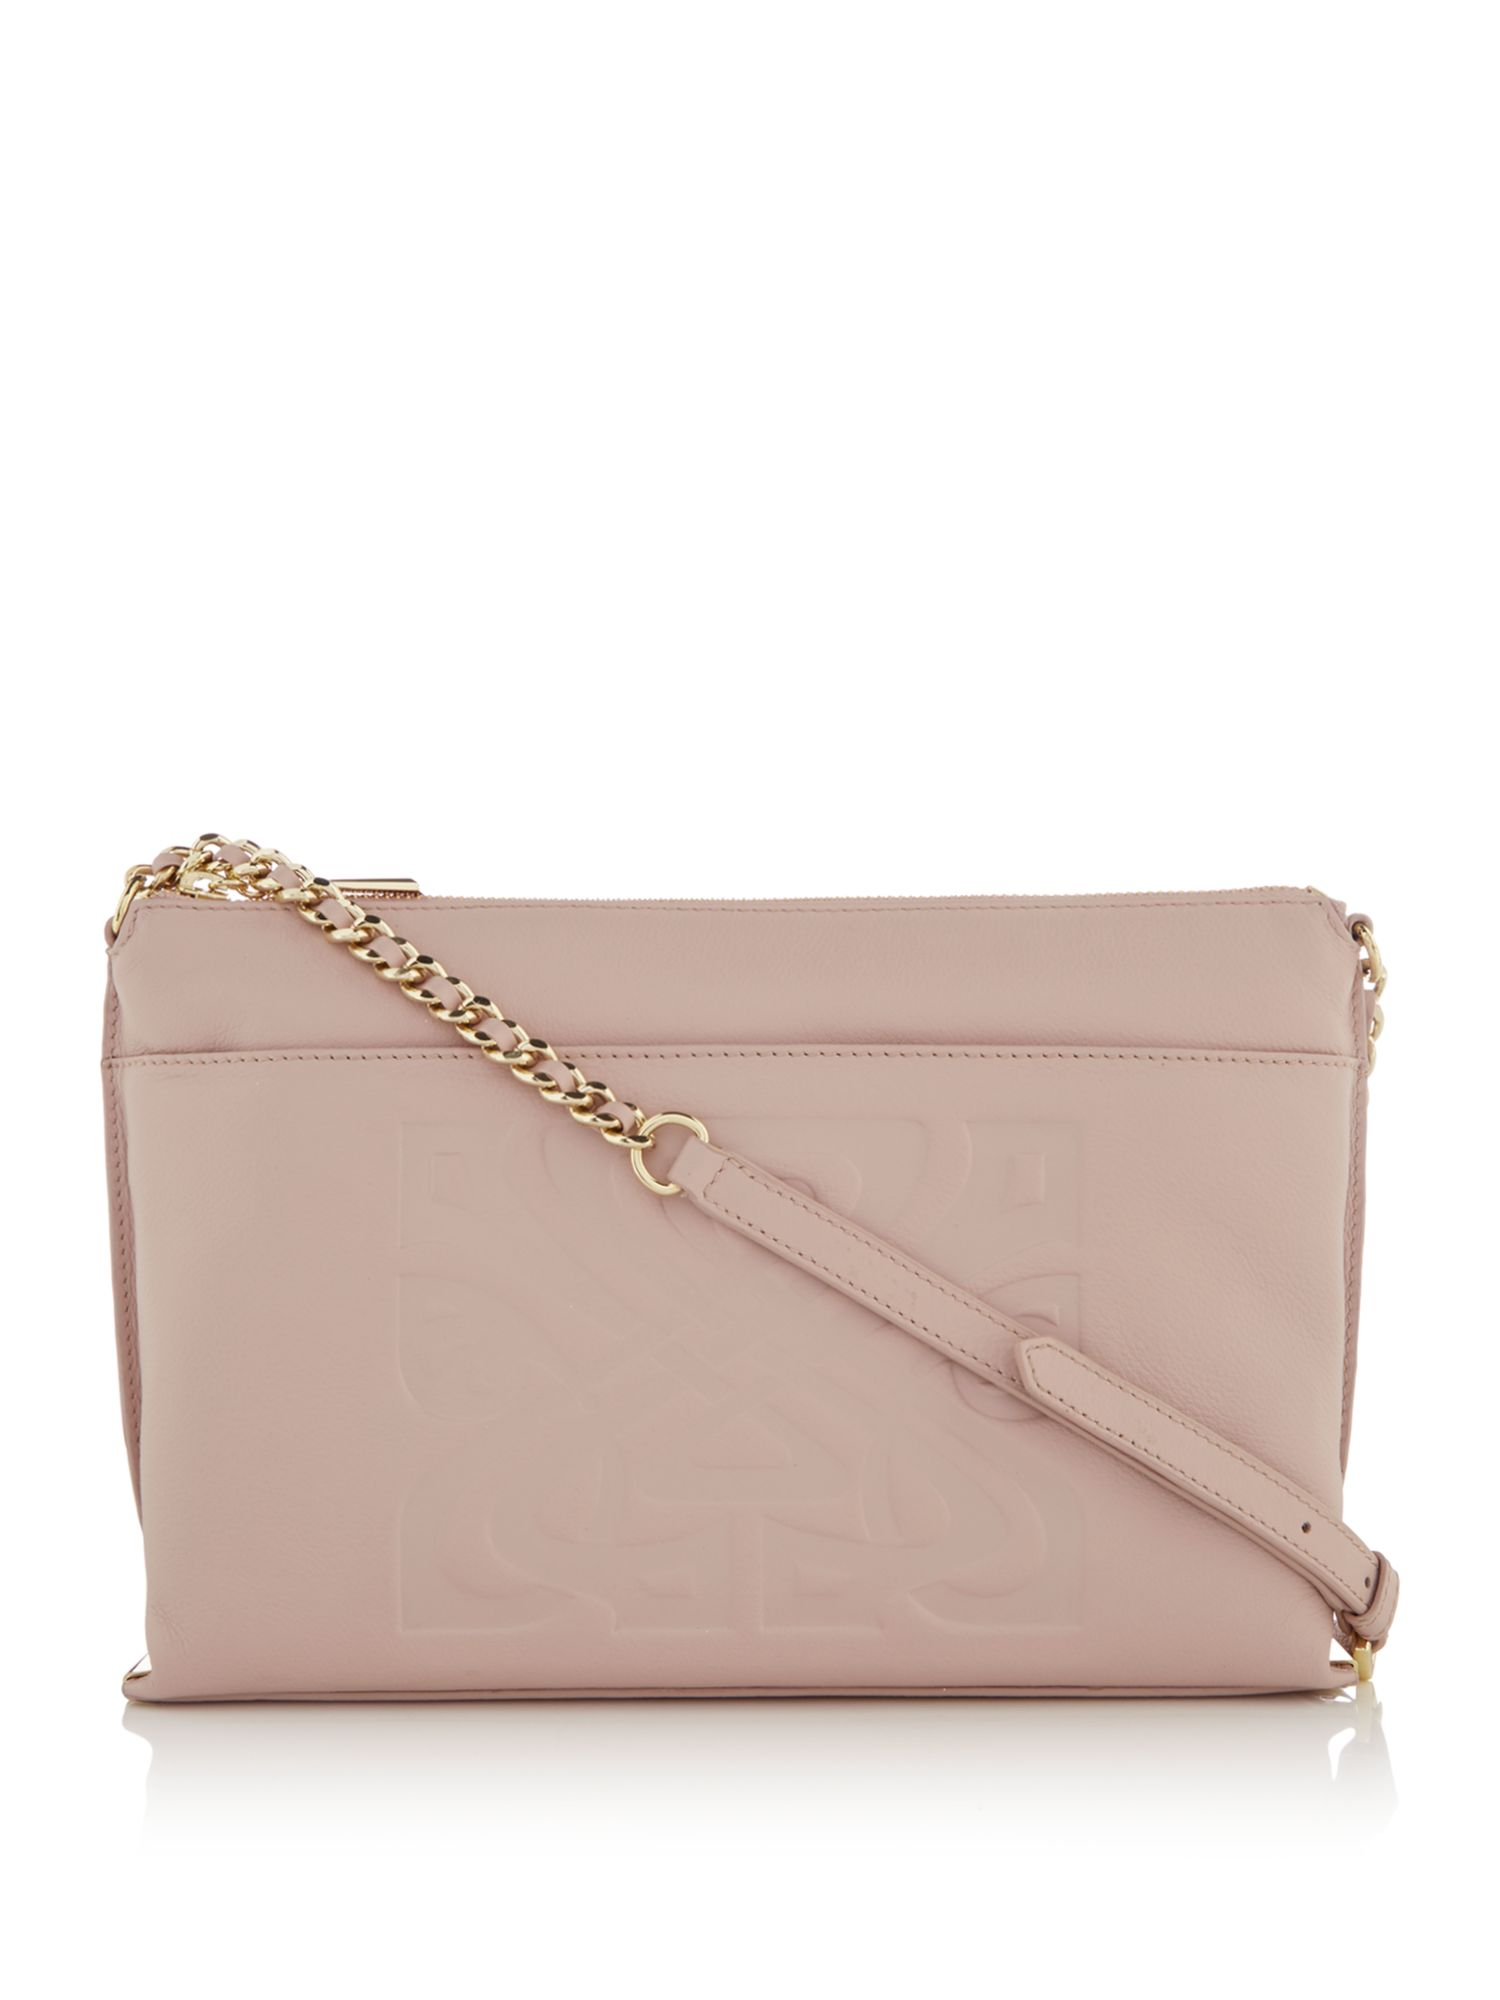 Constance Crossbody Leather Bag by Biba